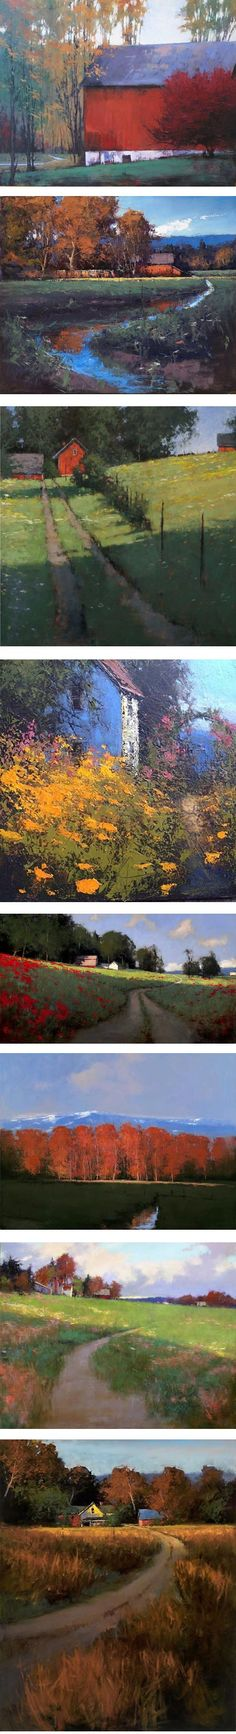 Romona Youngquist is a painter based in Oregon whose paintings of pastoral fields and farms are rendered with a wonderful variety of textural effects.